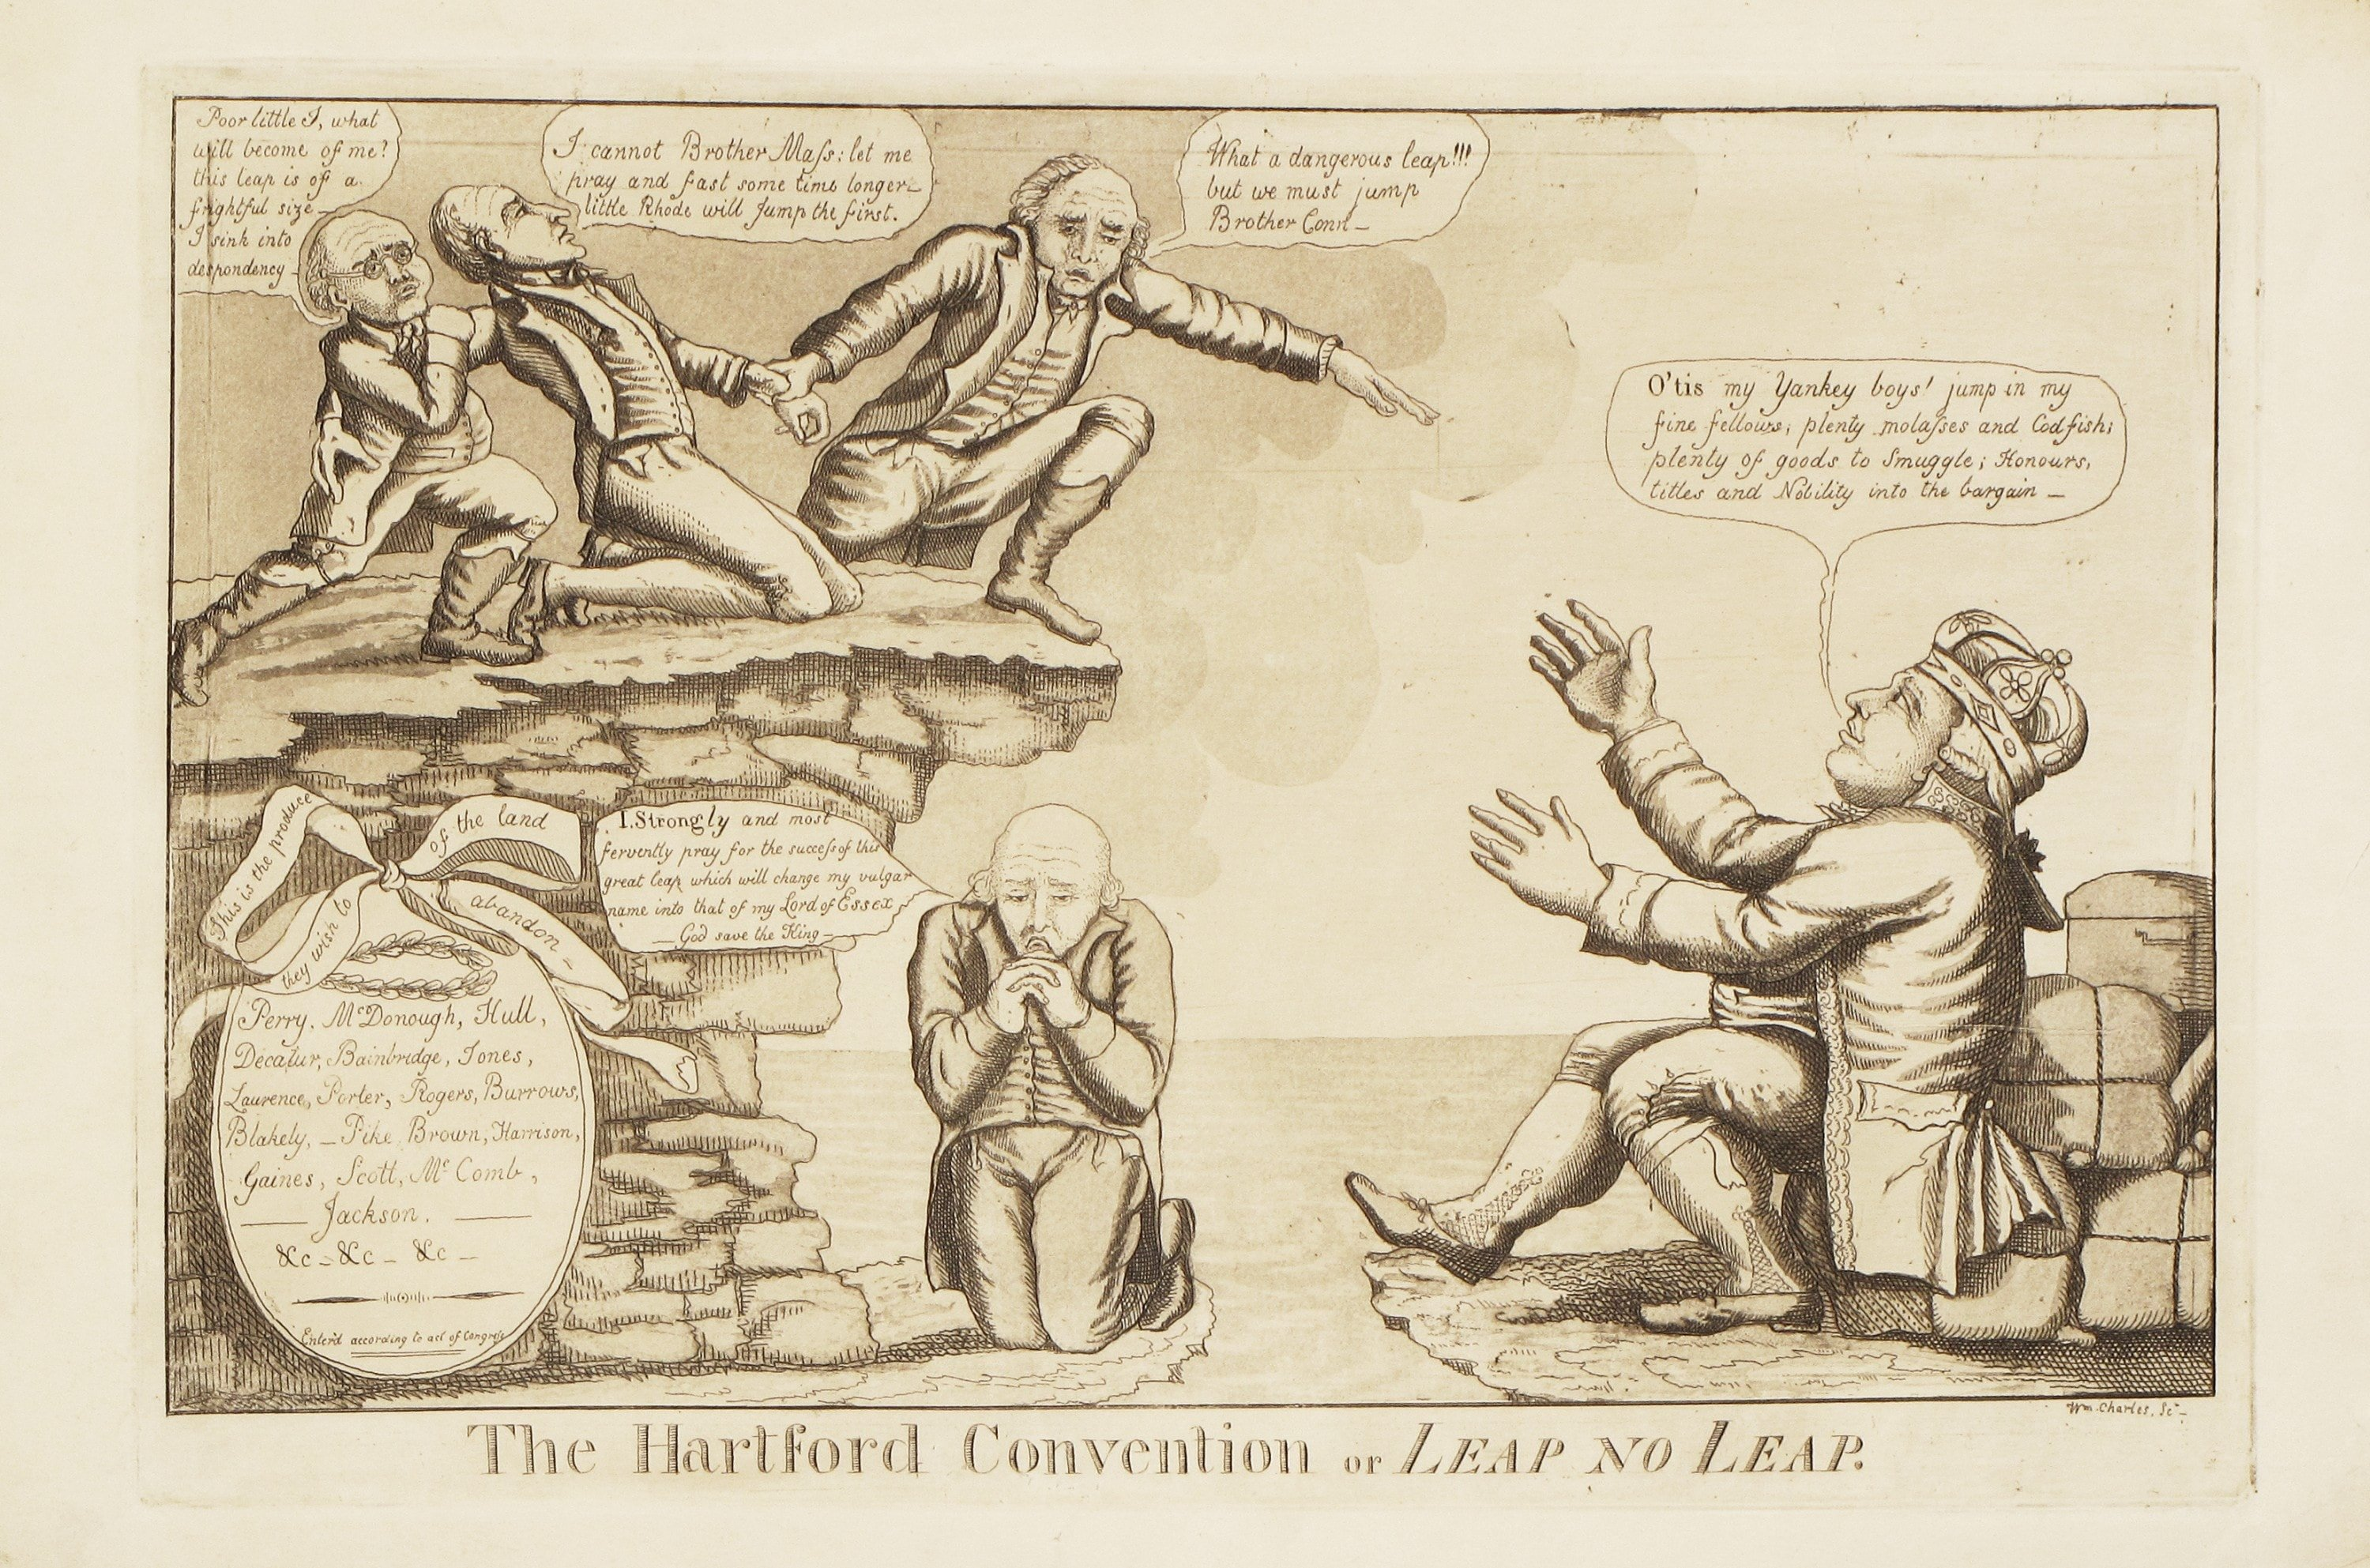 War of 1812 political caricature skewering New England ...